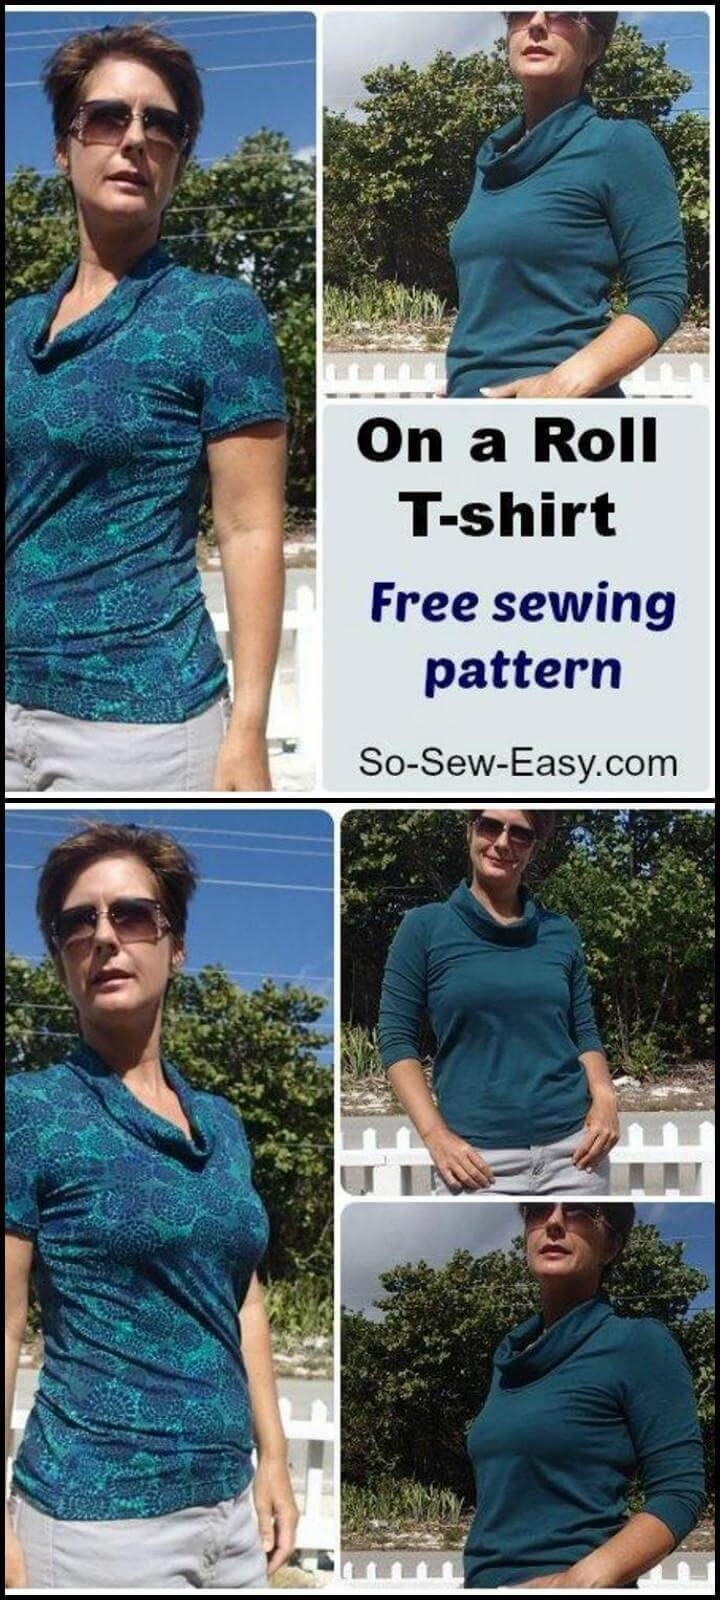 stylish on a roll t-shirt free sewing pattern